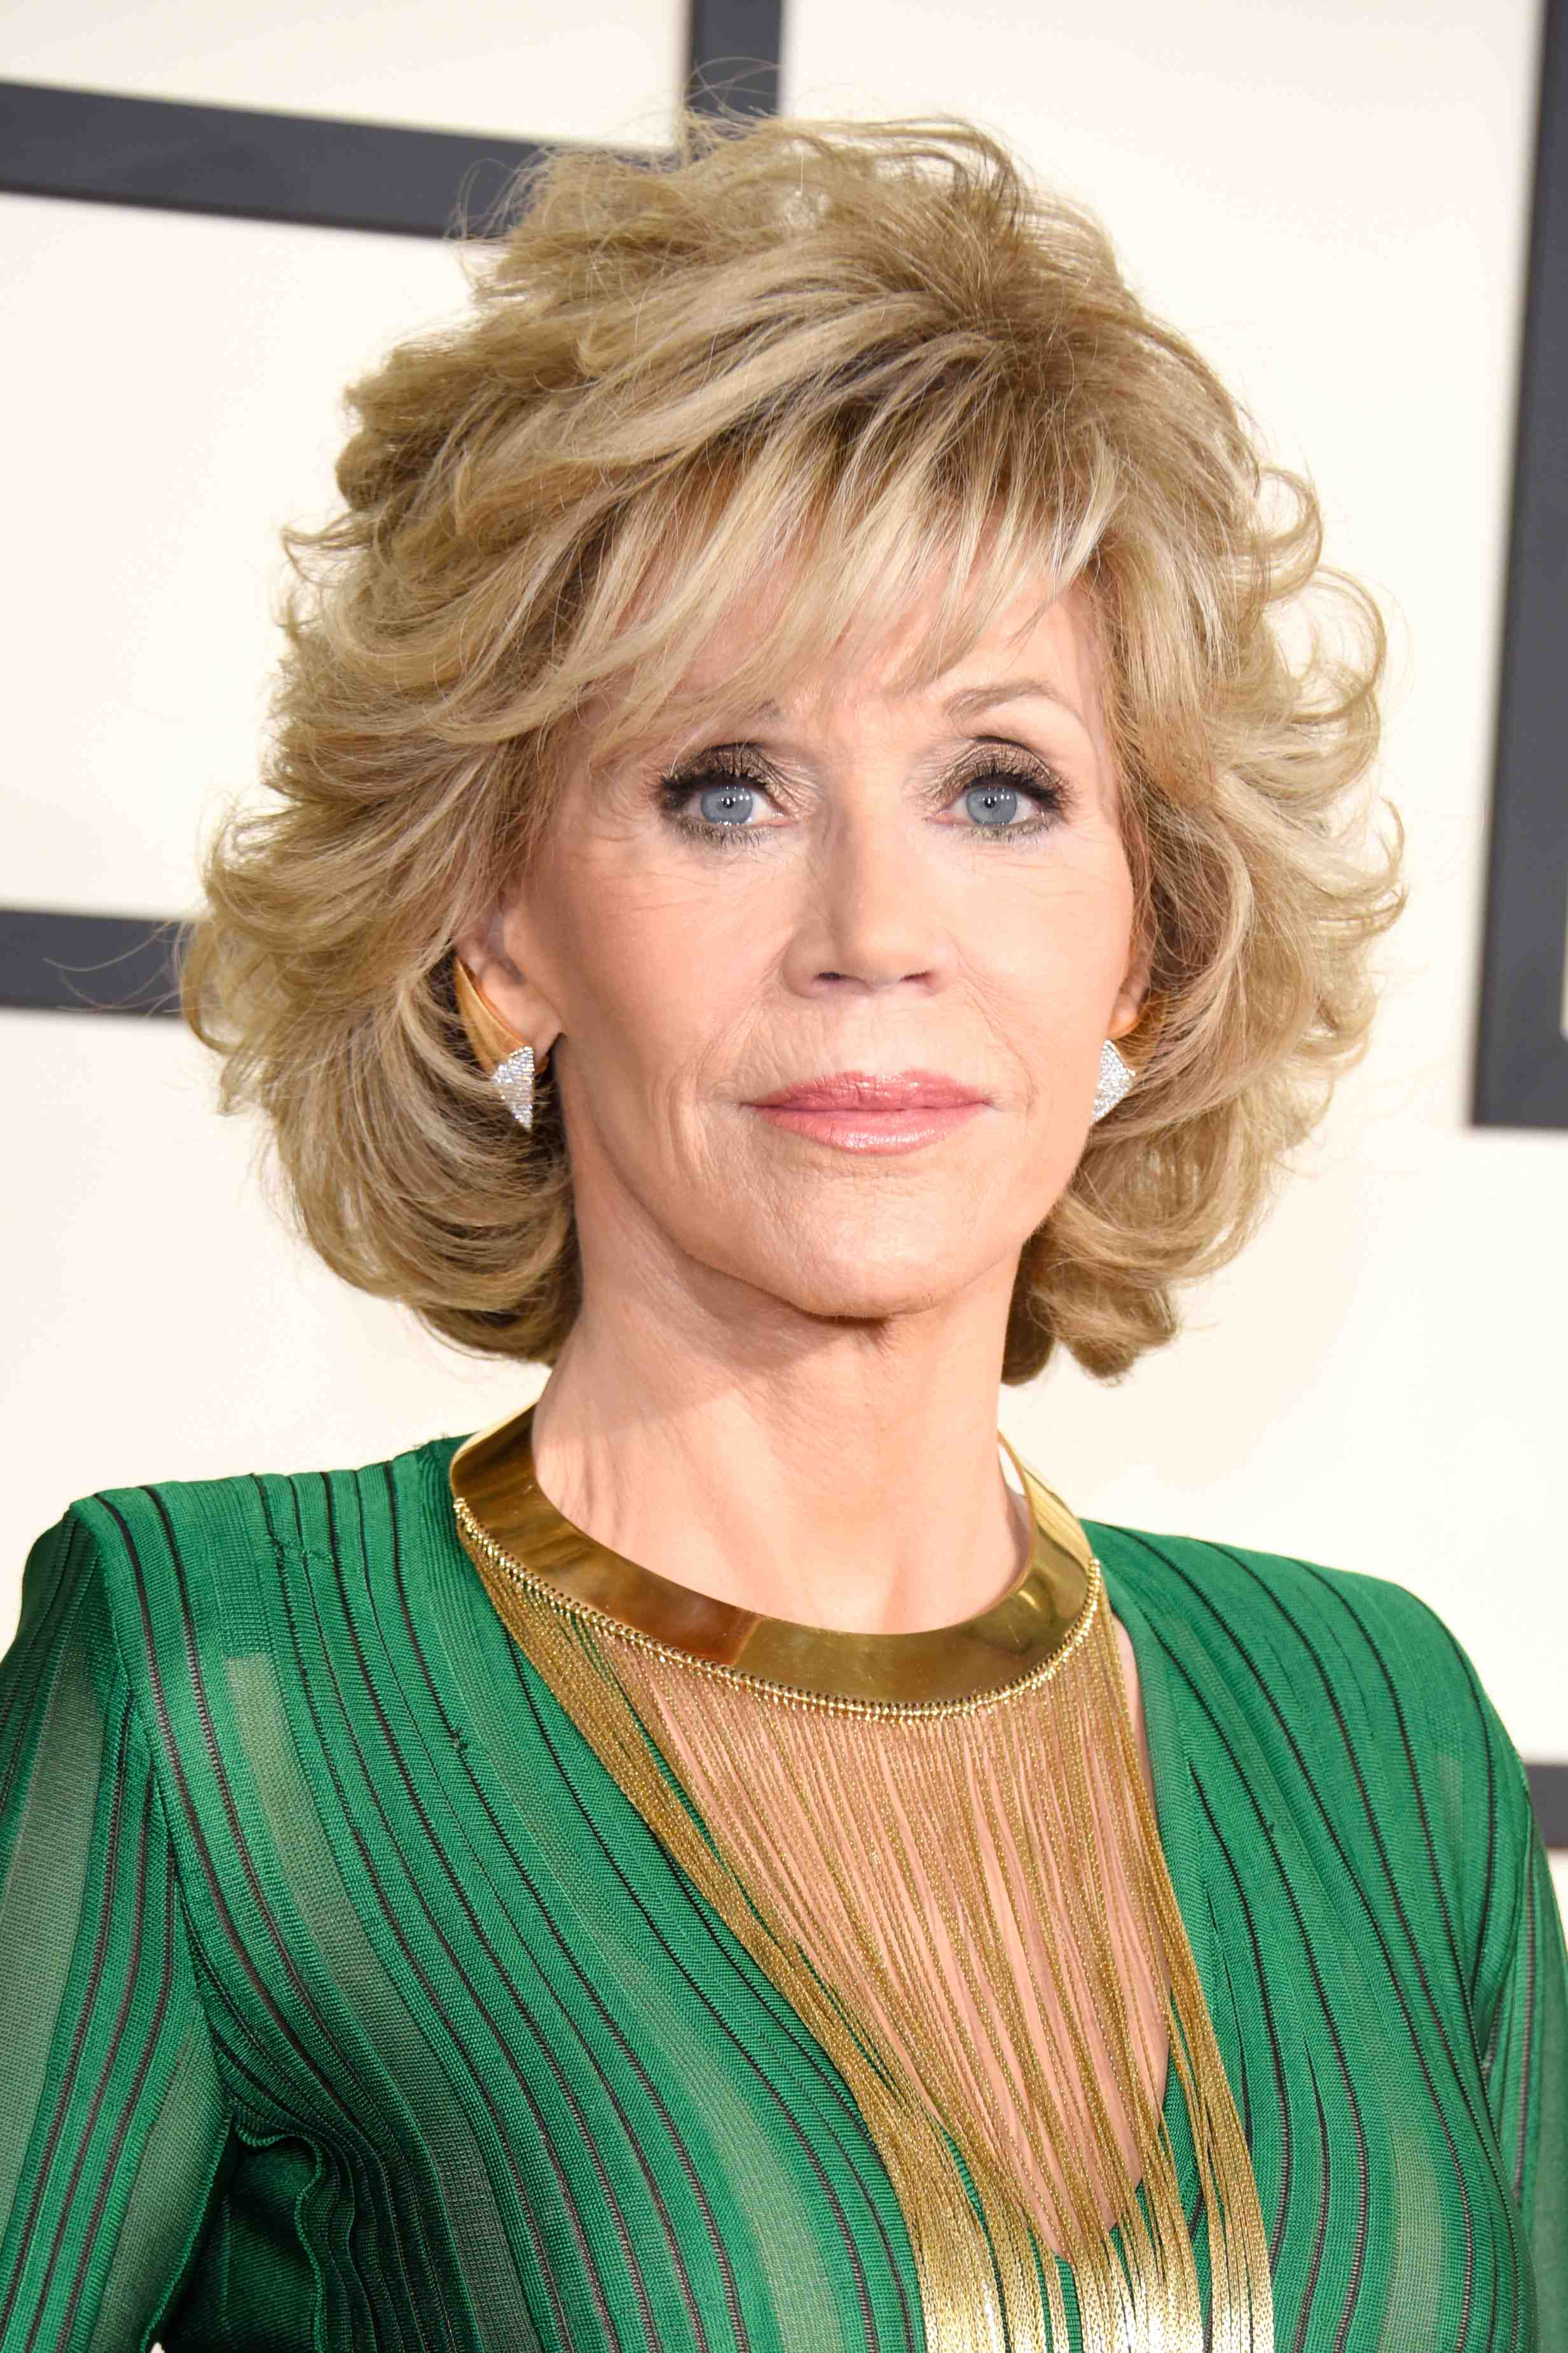 092362a0 Jane Fonda, 77, Wows in a Jumpsuit at the Grammy Awards — See the ...